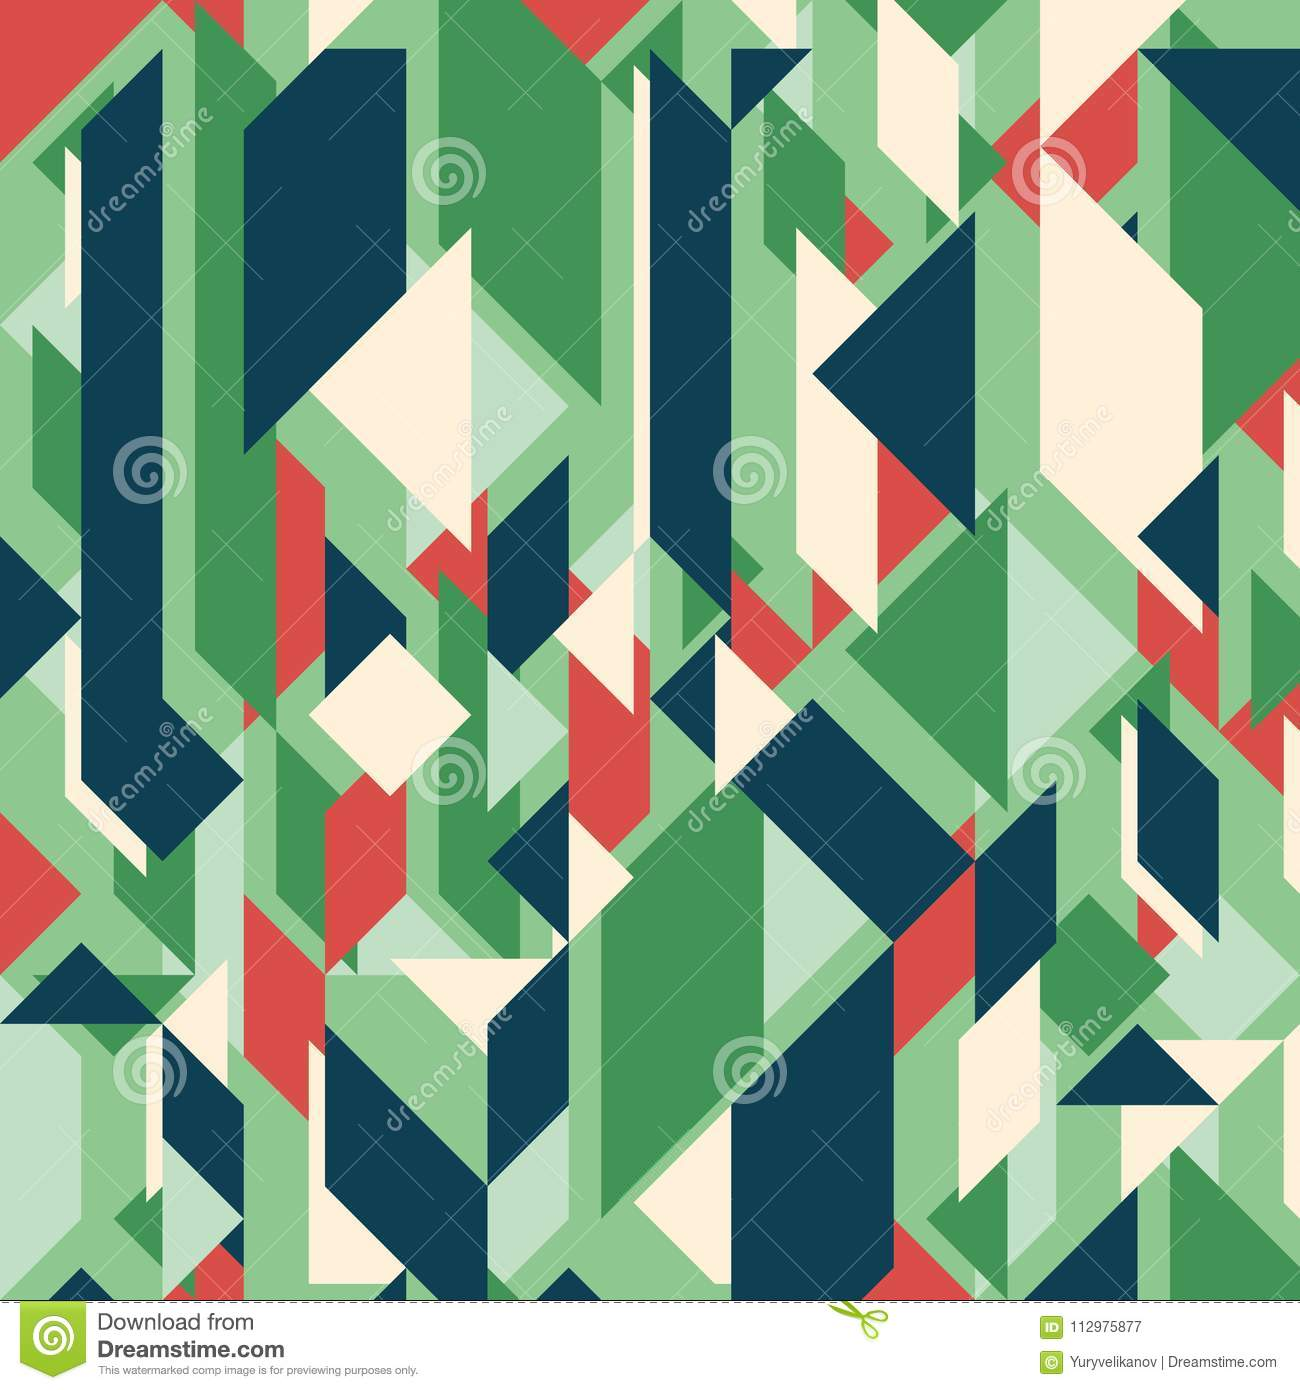 Abstract geometric background. Modern overlapping rectangles and triangles.